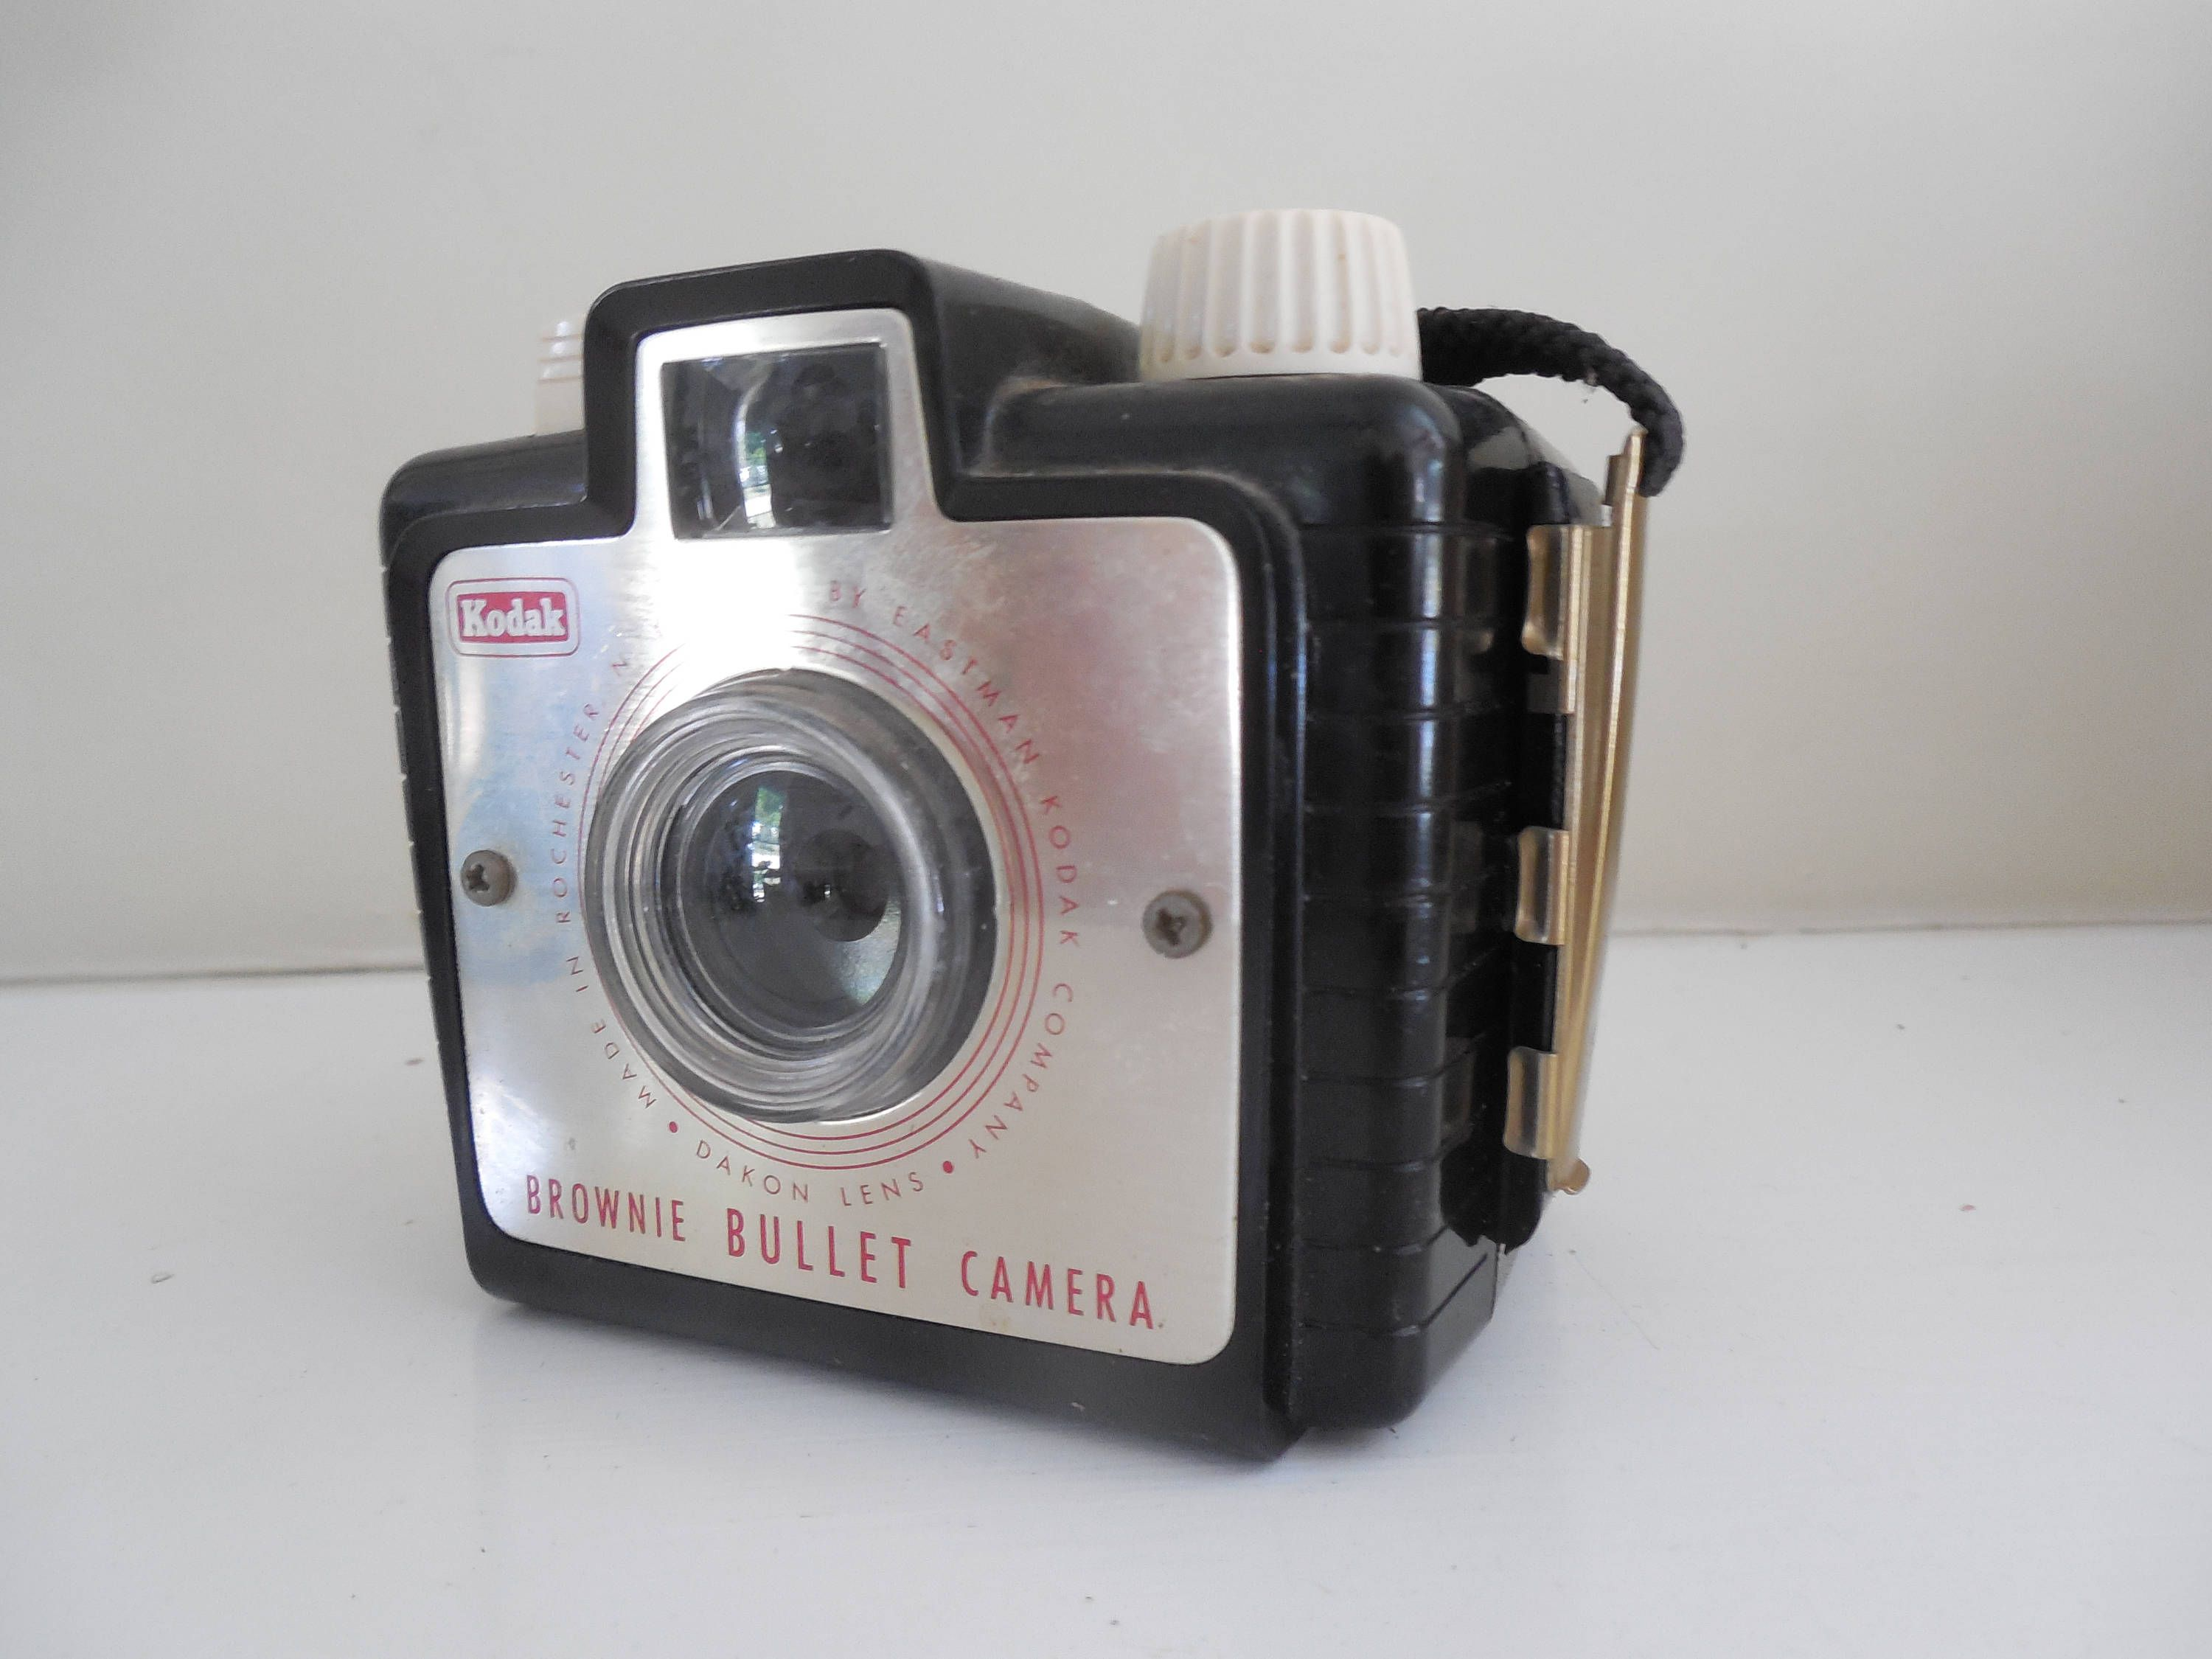 Brownie Kodak Camera Photo Prop Vintage Camera Brownie Kodak Camera Photo prop Vintage Camera Brownie brownie kodak camera